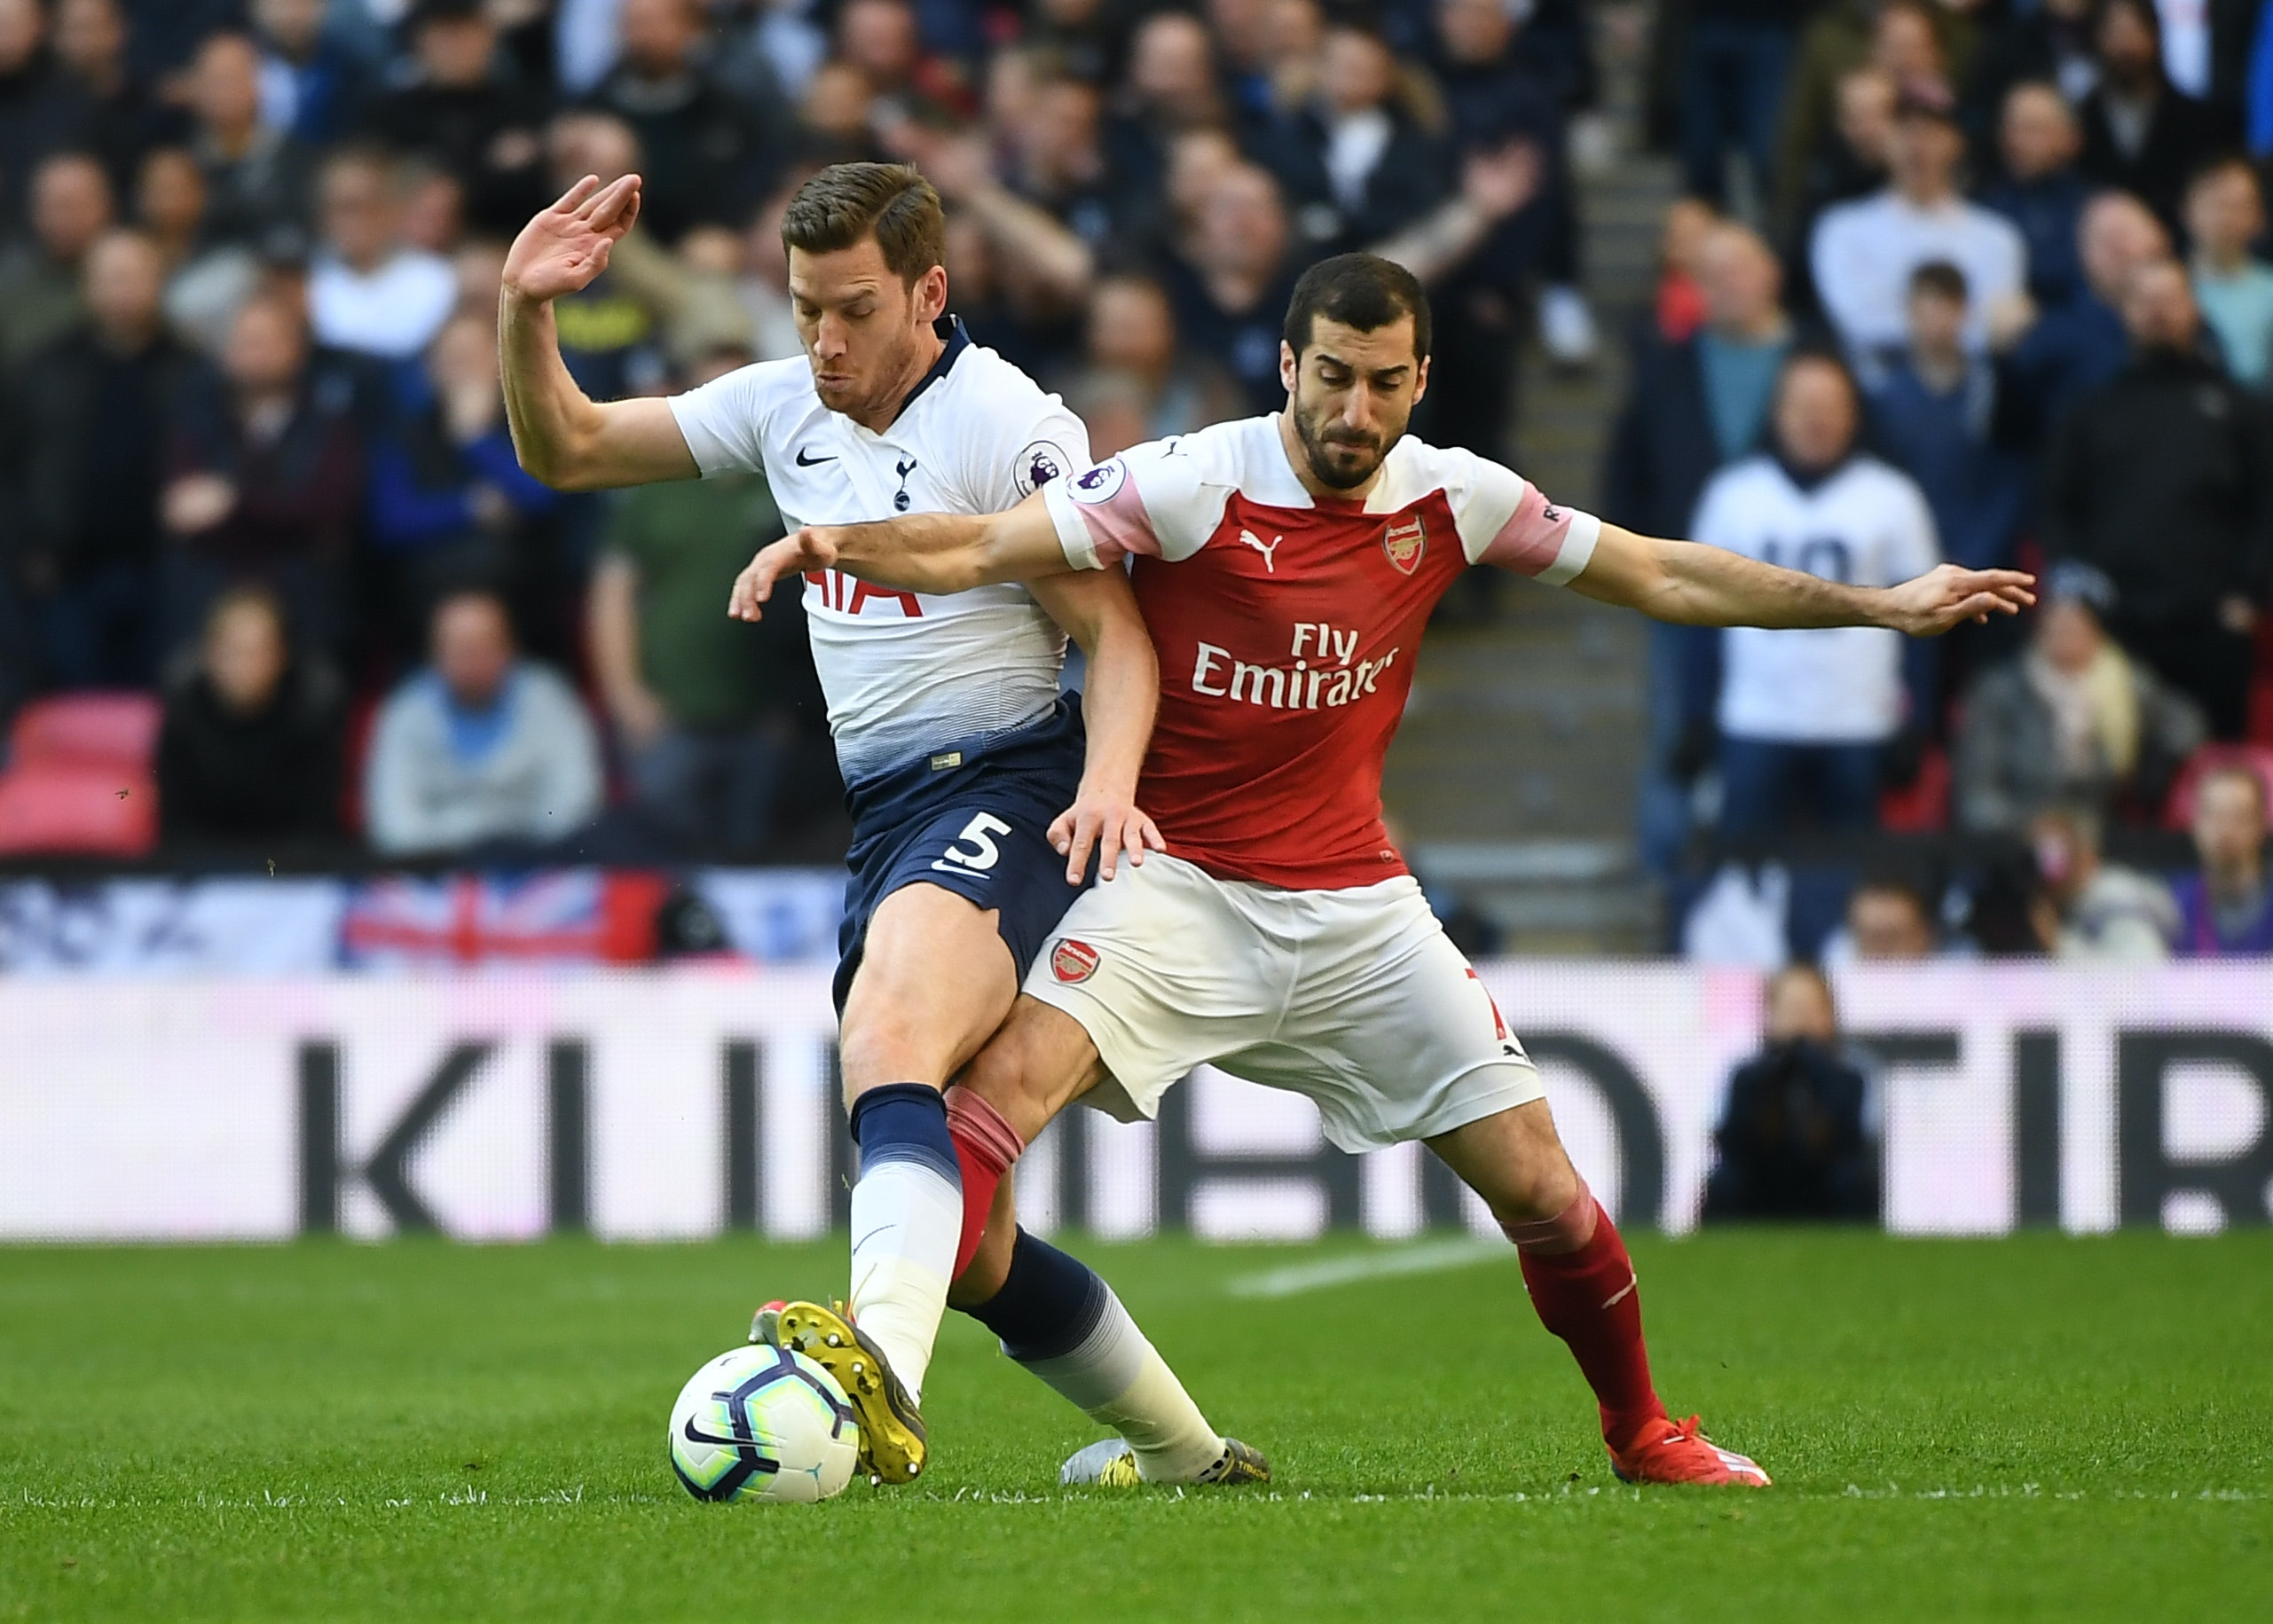 Arsenal's Mkhitaryan omission from Europa League Baku final highlights football's global politics at its most fragile